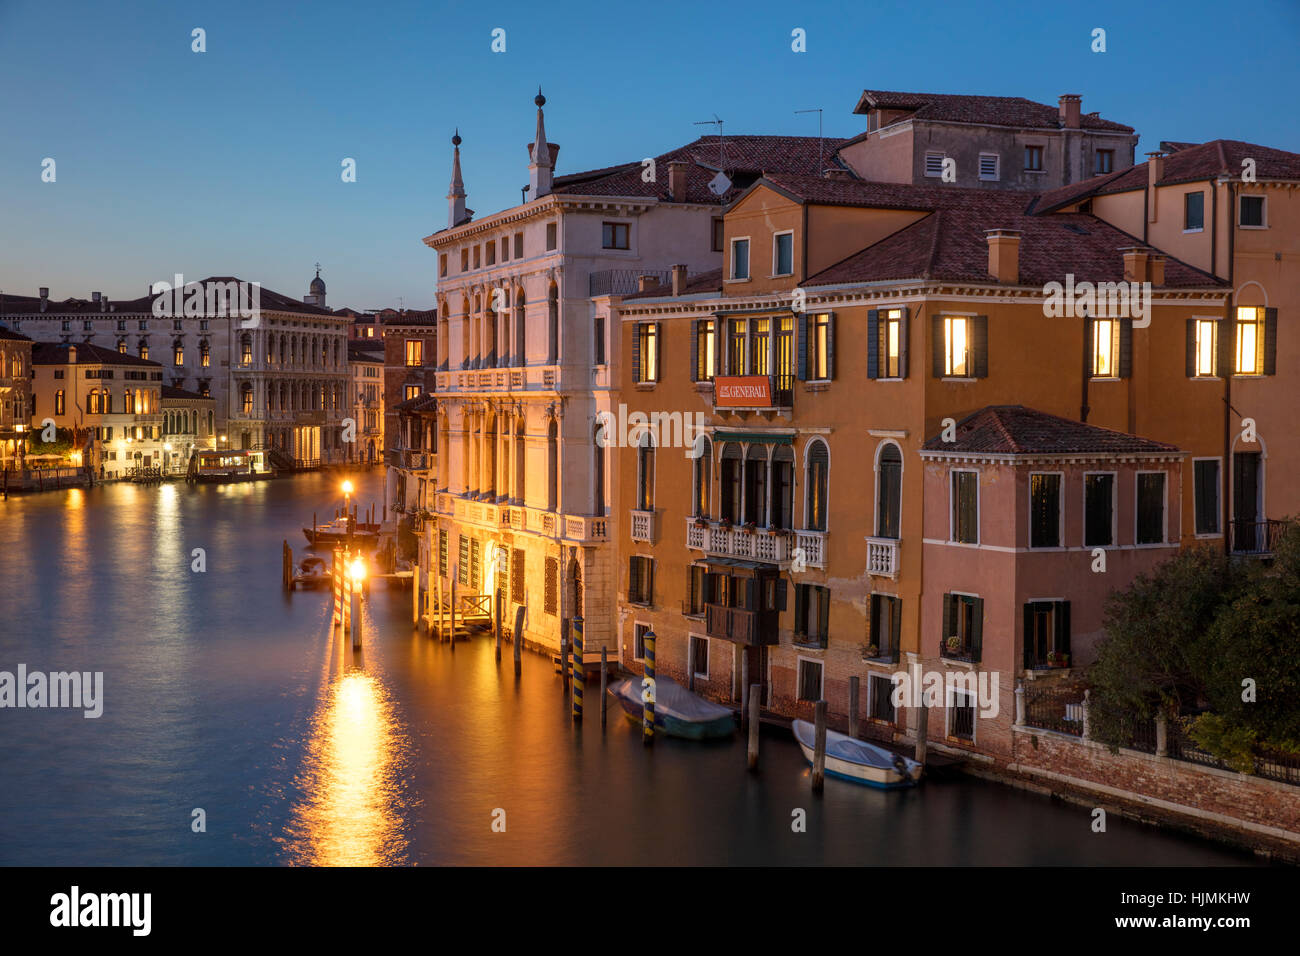 Twilgiht over the buildings along the Grand Canal, Venice, Veneto, Italy - Stock Image